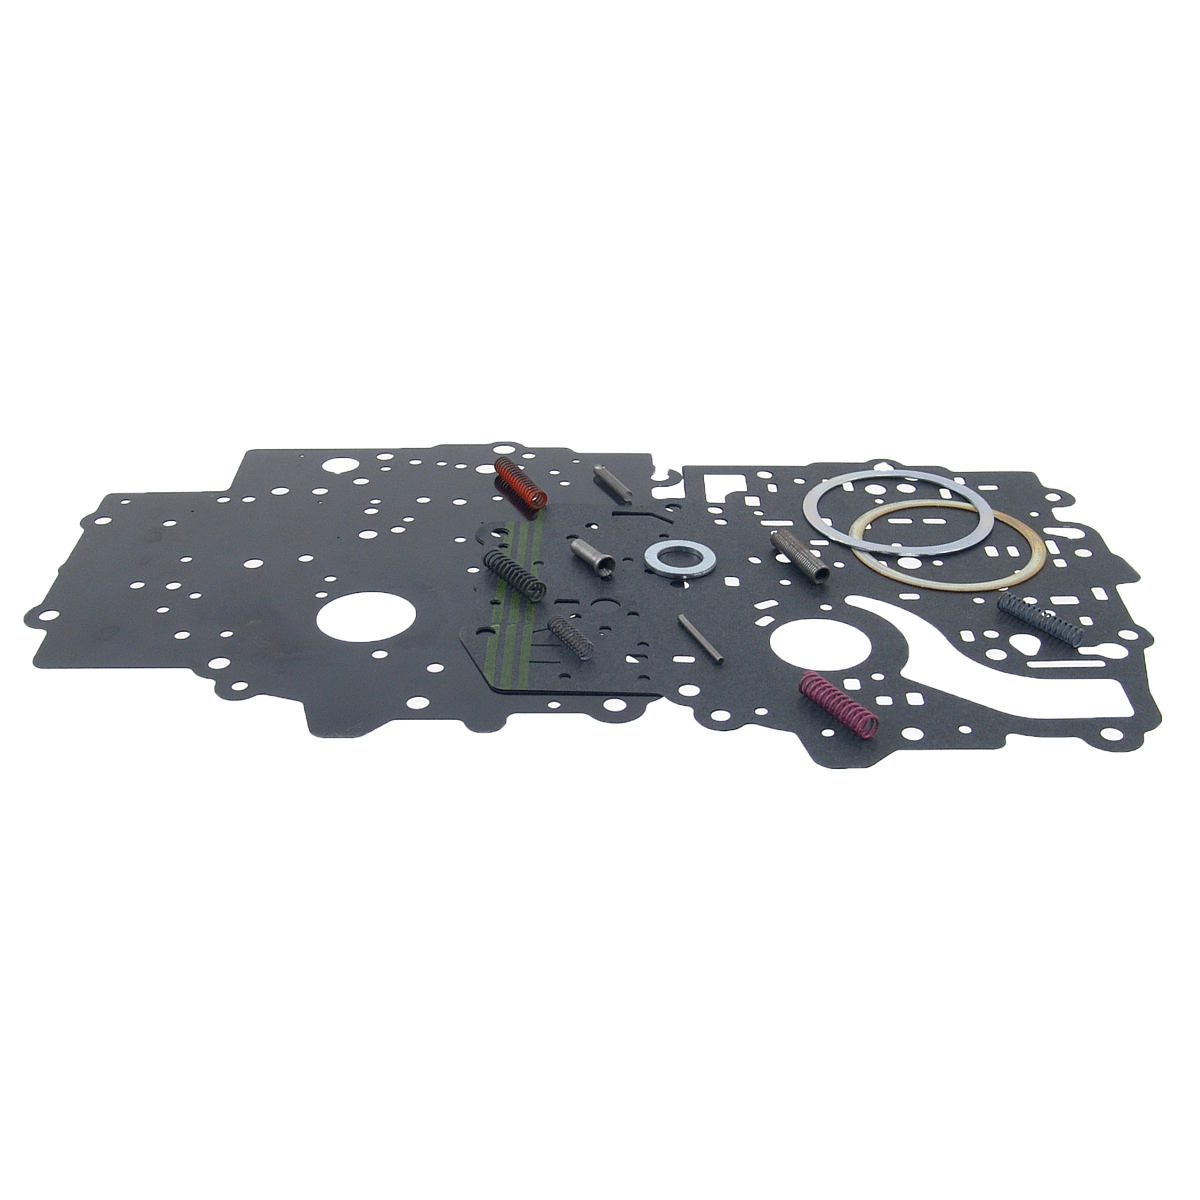 GM 125/C SHIFT KIT® Valve Body Repair Kit